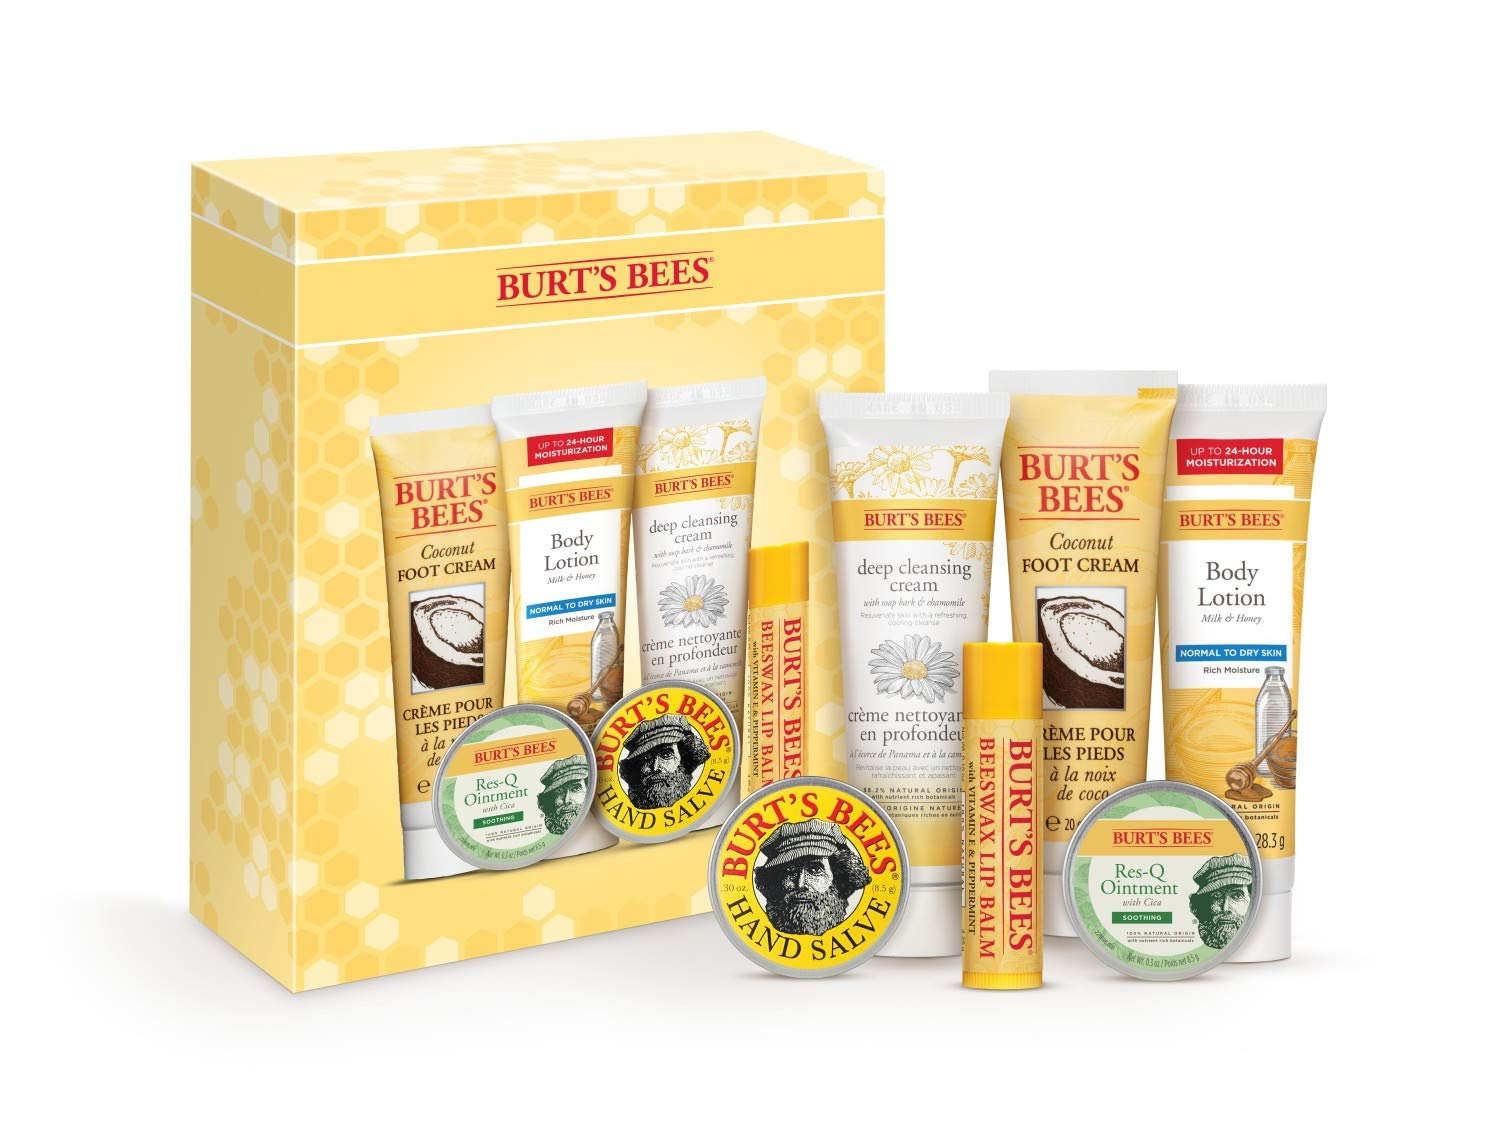 Burt's Bees Timeless Minis Kit With Coconut Foot Cream, Milk & Honey Body Lotion, Soap Bark & Chamomile Deep Cleansing Cream, Res-q Ointment, Hand Salve and Beeswax Lip Balm